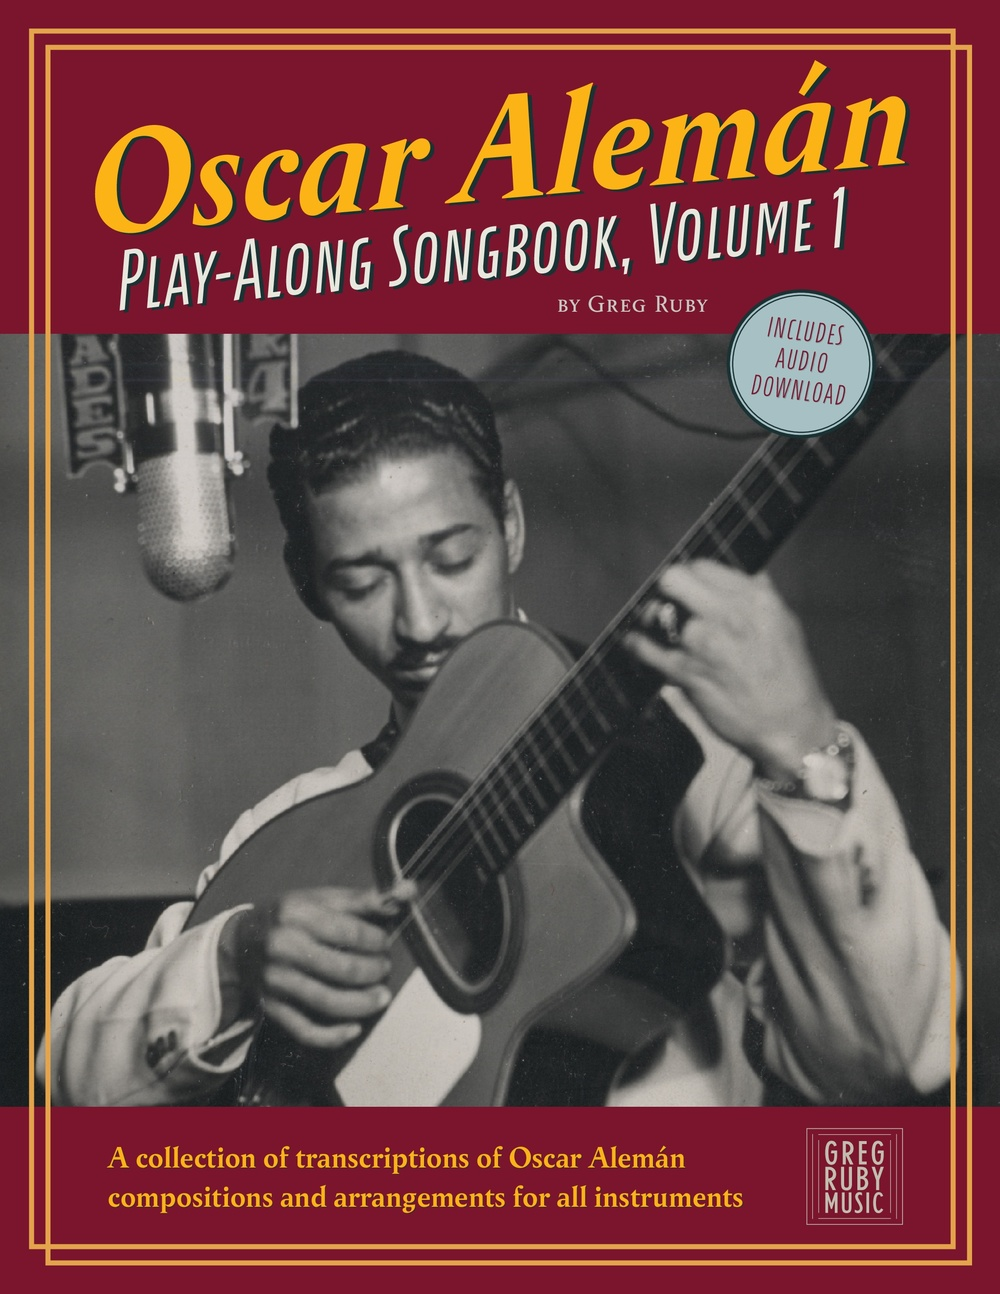 Oscar Aleman: Play-Along Songbook, Vol. 1